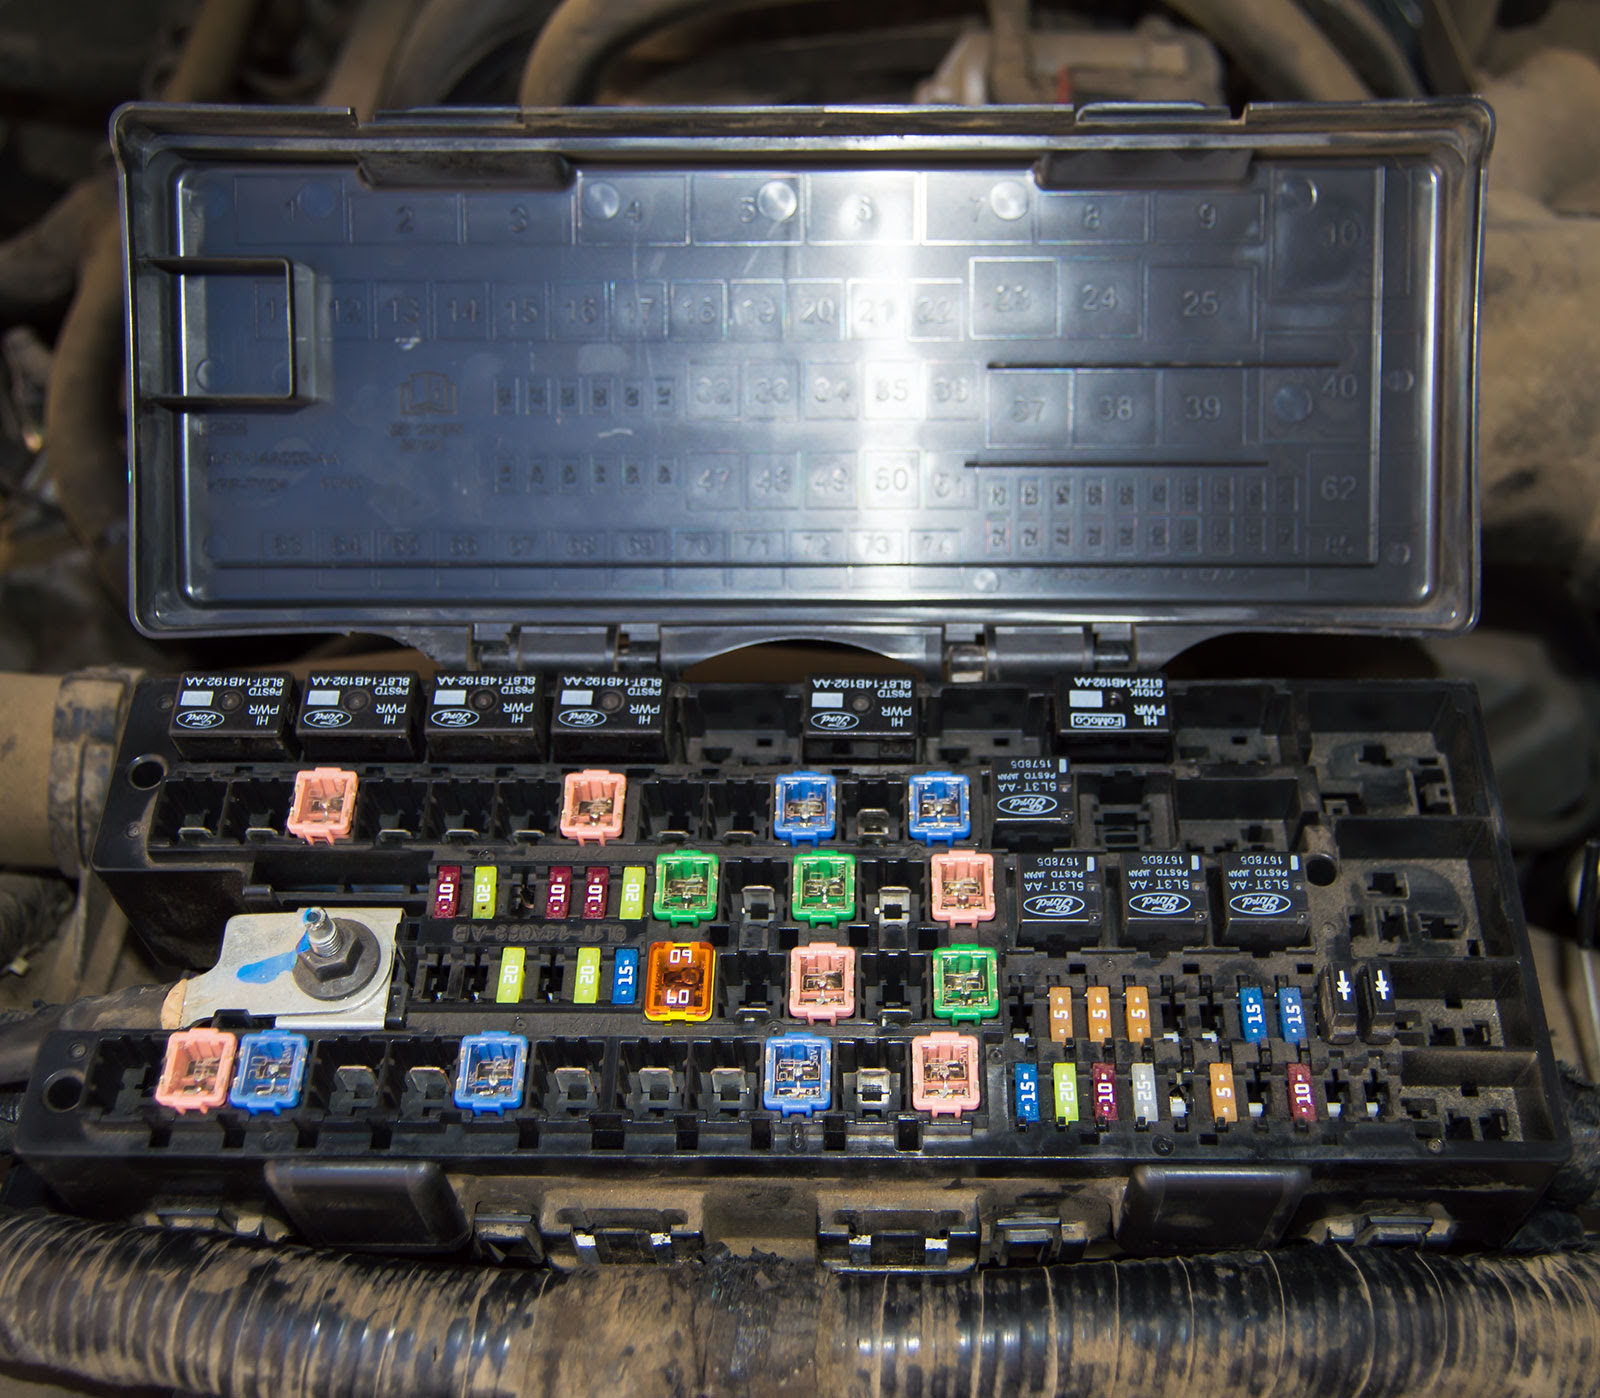 2010 mustang v6 engine fuse box cover image 6